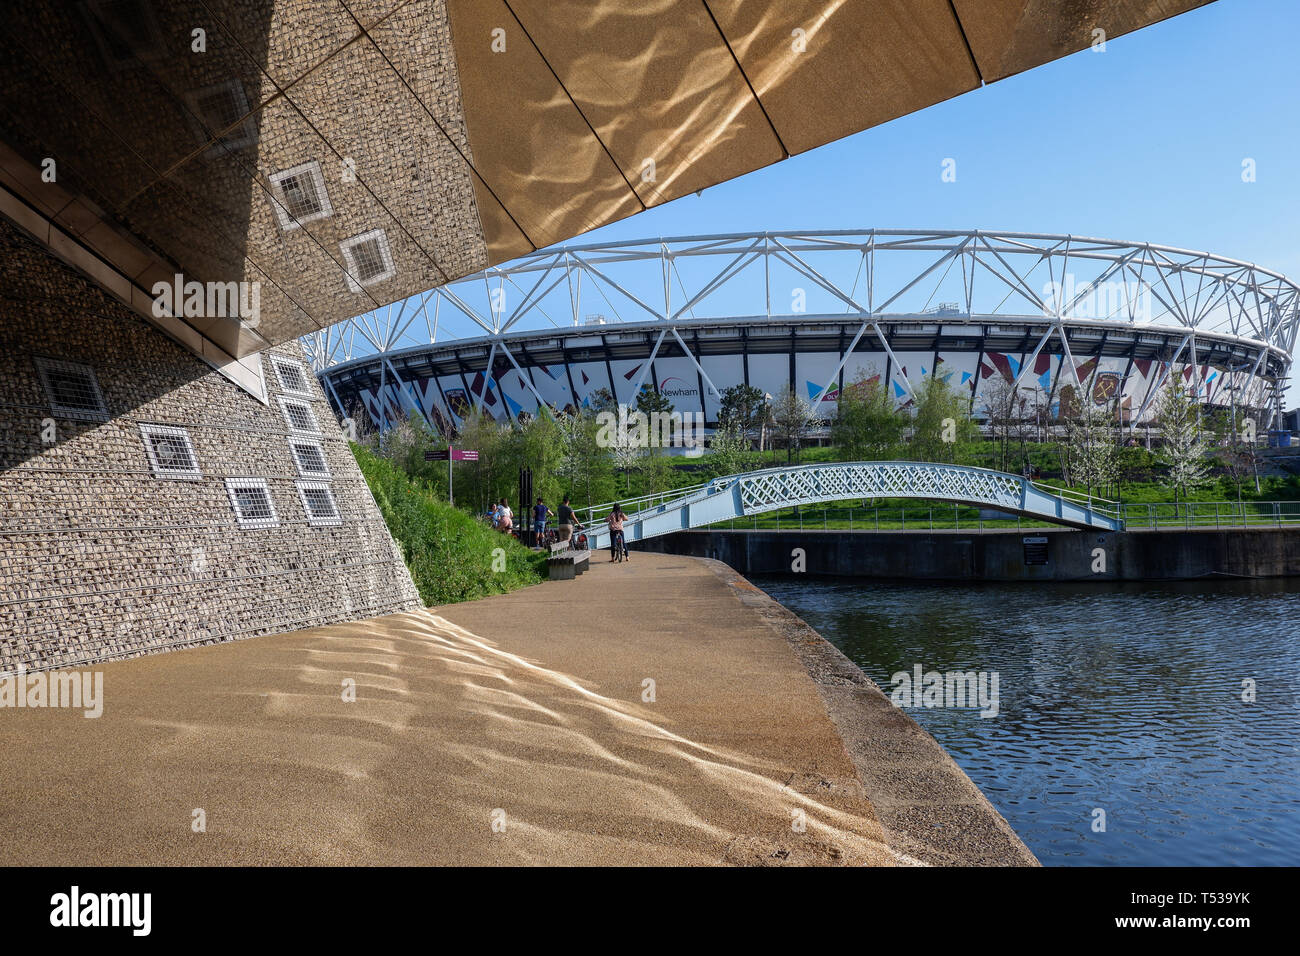 The Diamond Bridge and Carpenters Lock on the River Lea, Queen Elizabeth Olympic Park, Stratford, London, England, 2019 - Stock Image